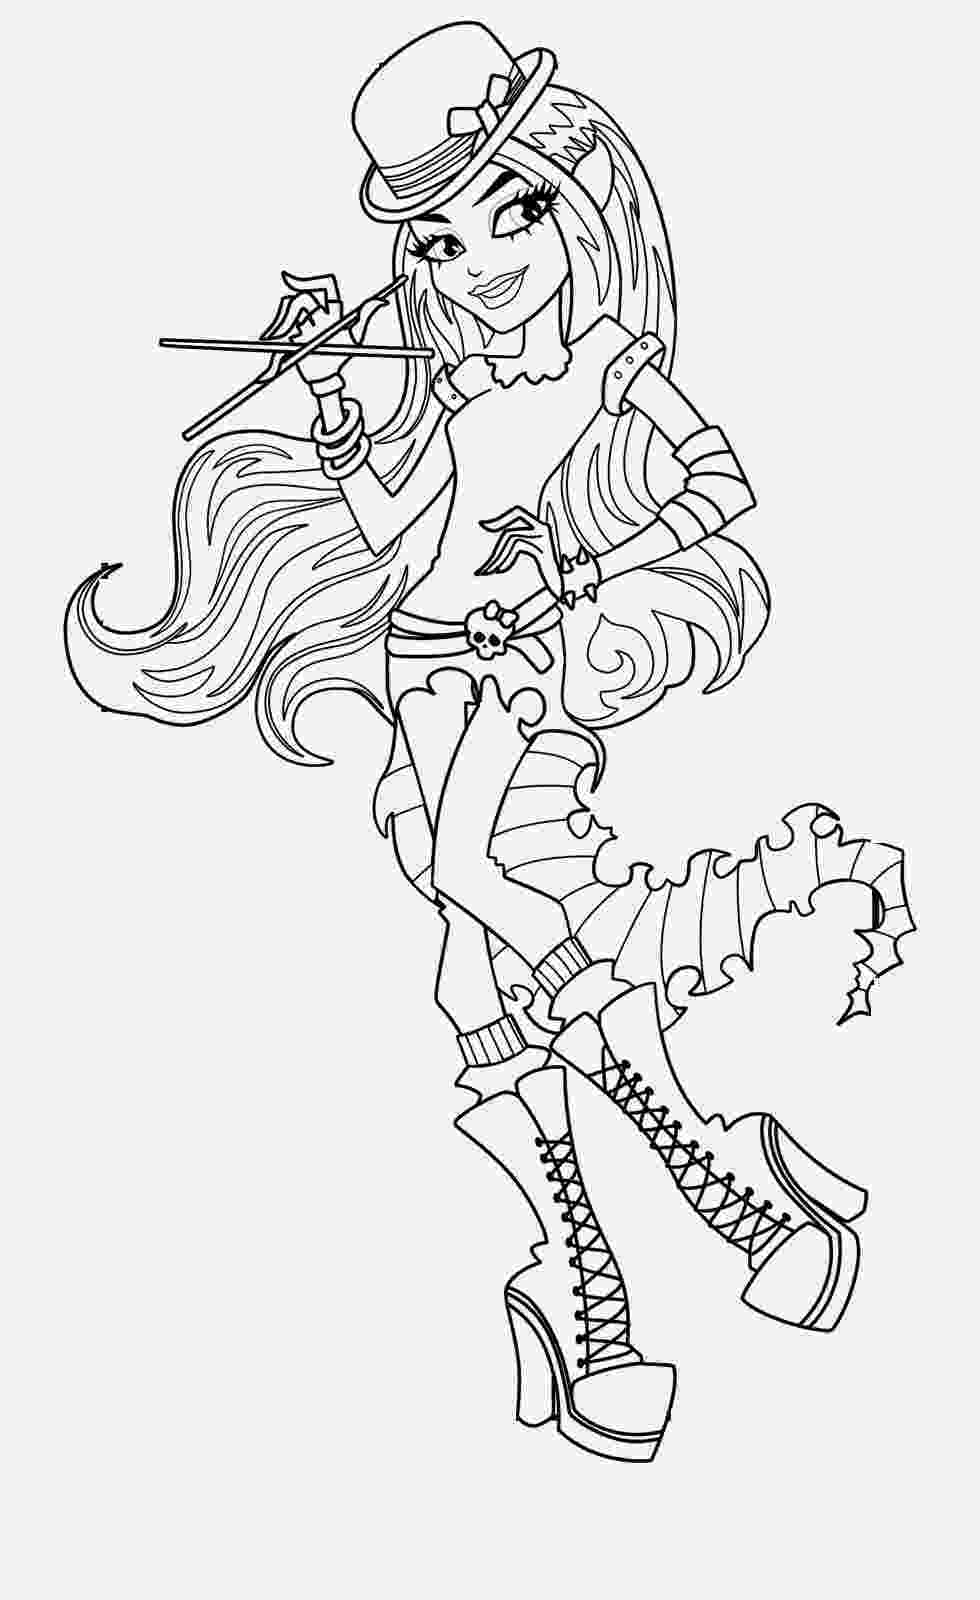 free colouring pages monster high coloring pages monster high coloring pages free and printable pages monster high colouring free